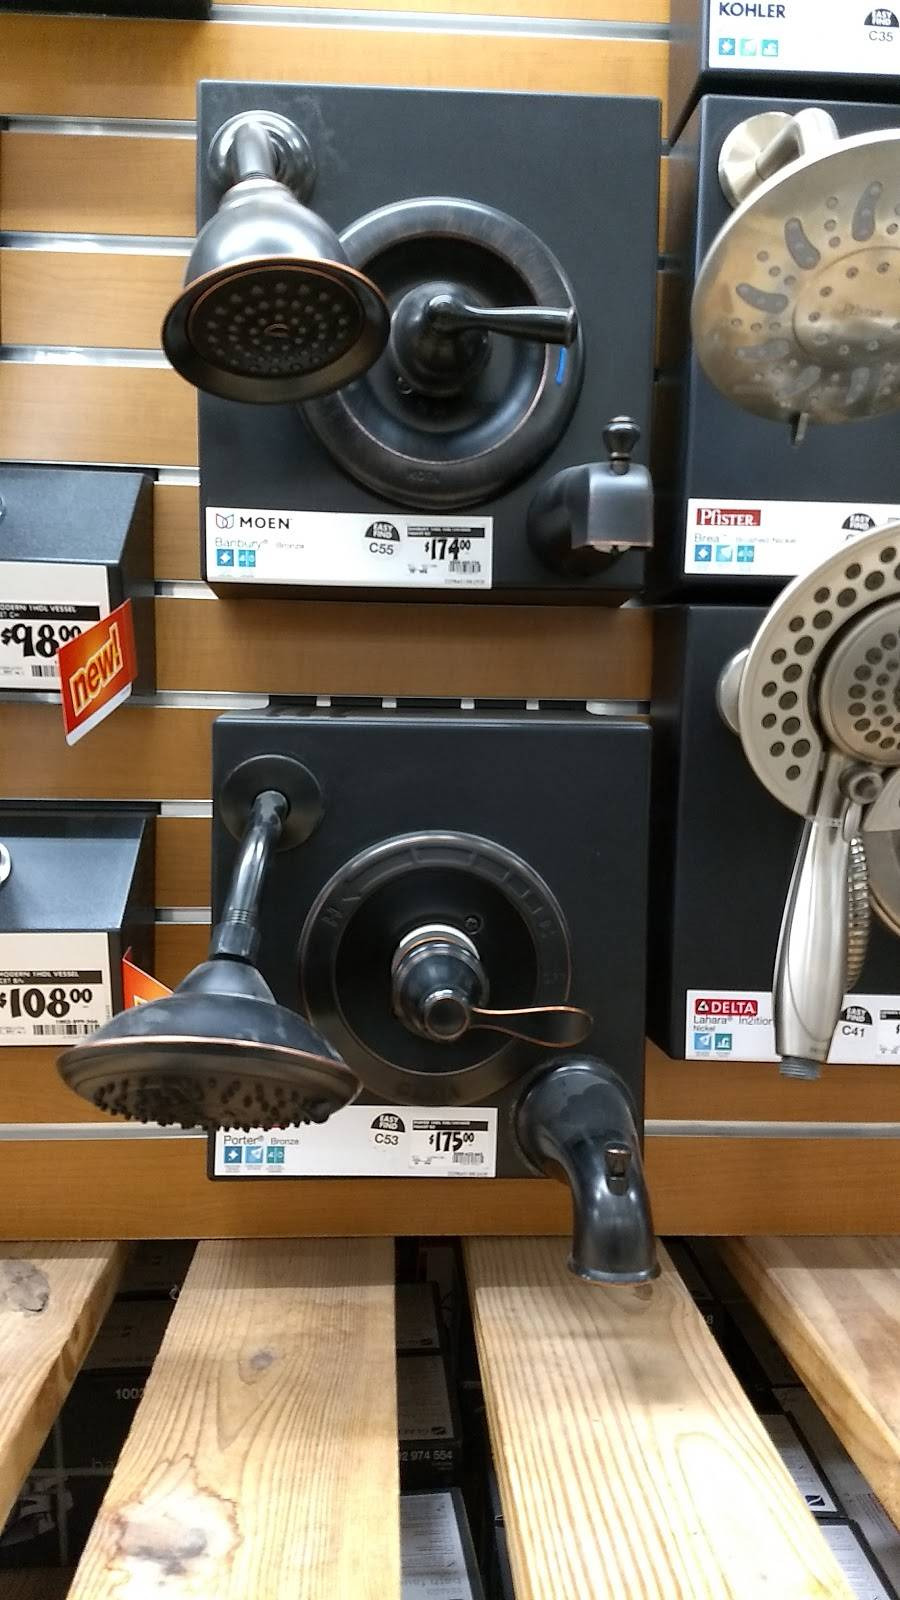 Home Services at The Home Depot - painter  | Photo 6 of 6 | Address: 8704 Owenfield Dr, Powell, OH 43065, USA | Phone: (740) 212-5272